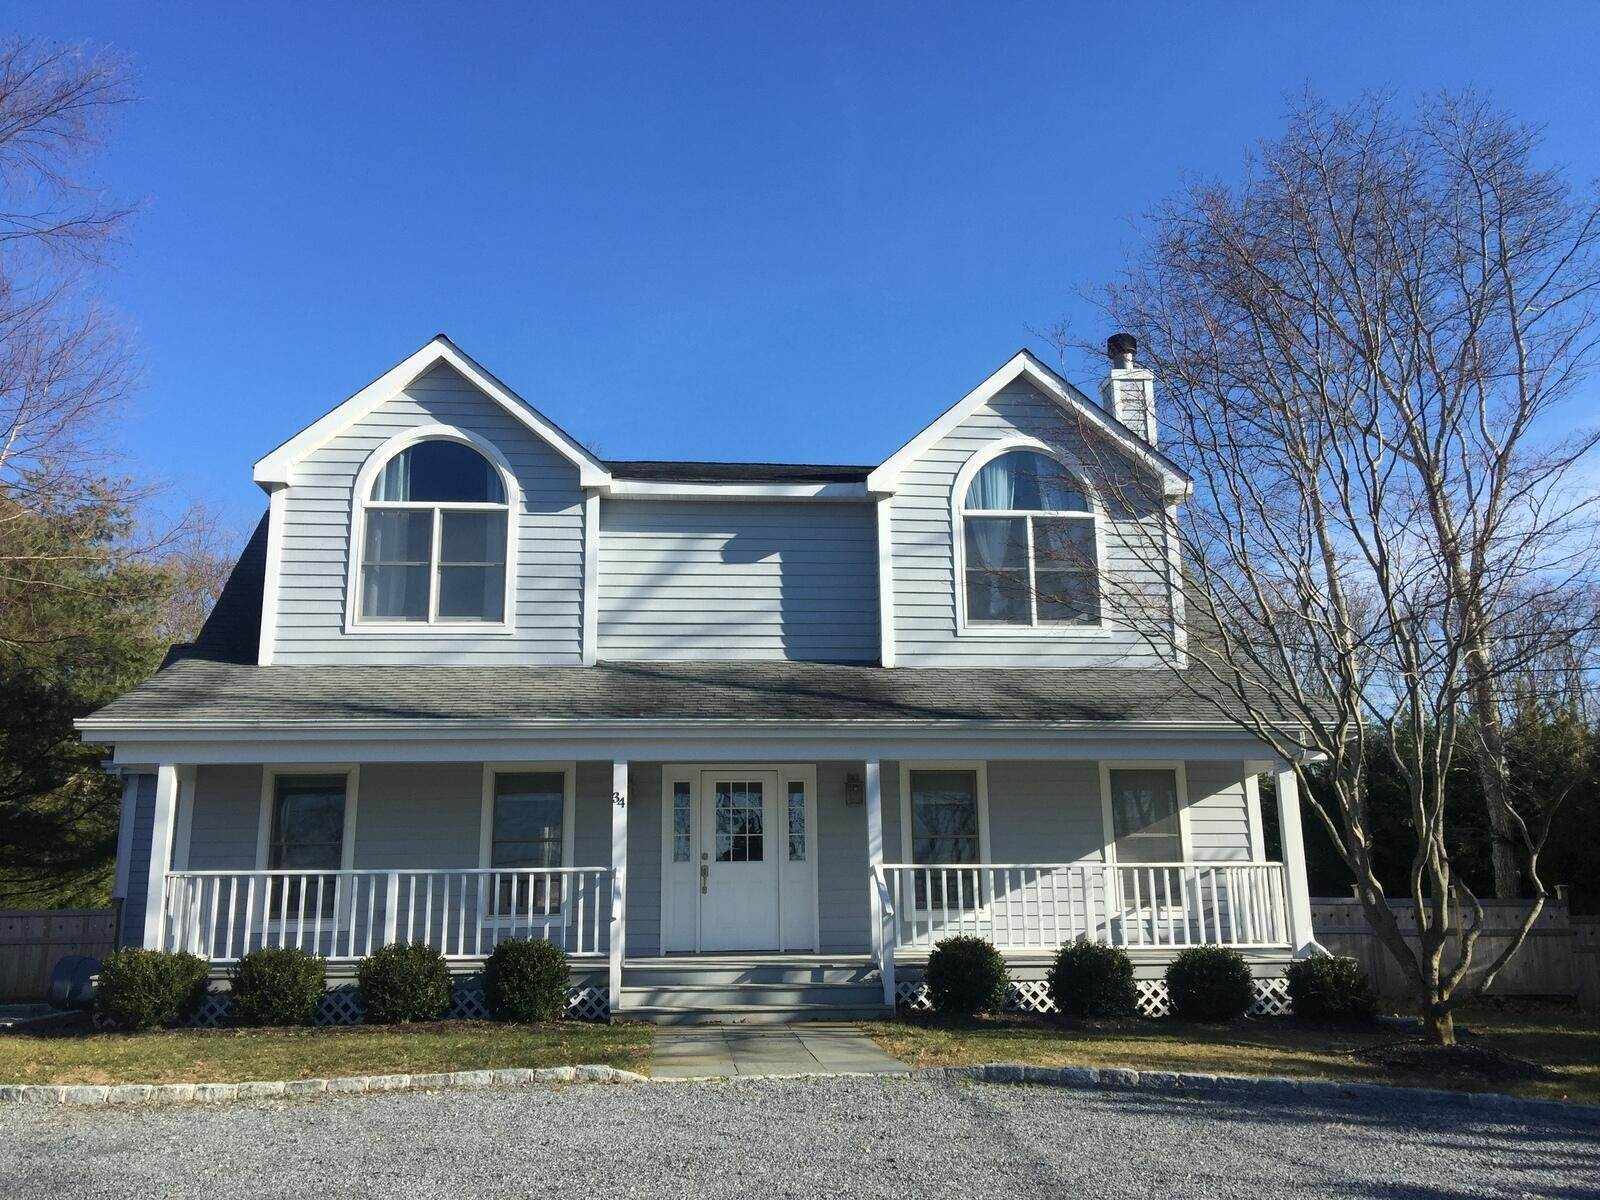 Single Family Home at Sunset Shores Sag Harbor, NY 11963